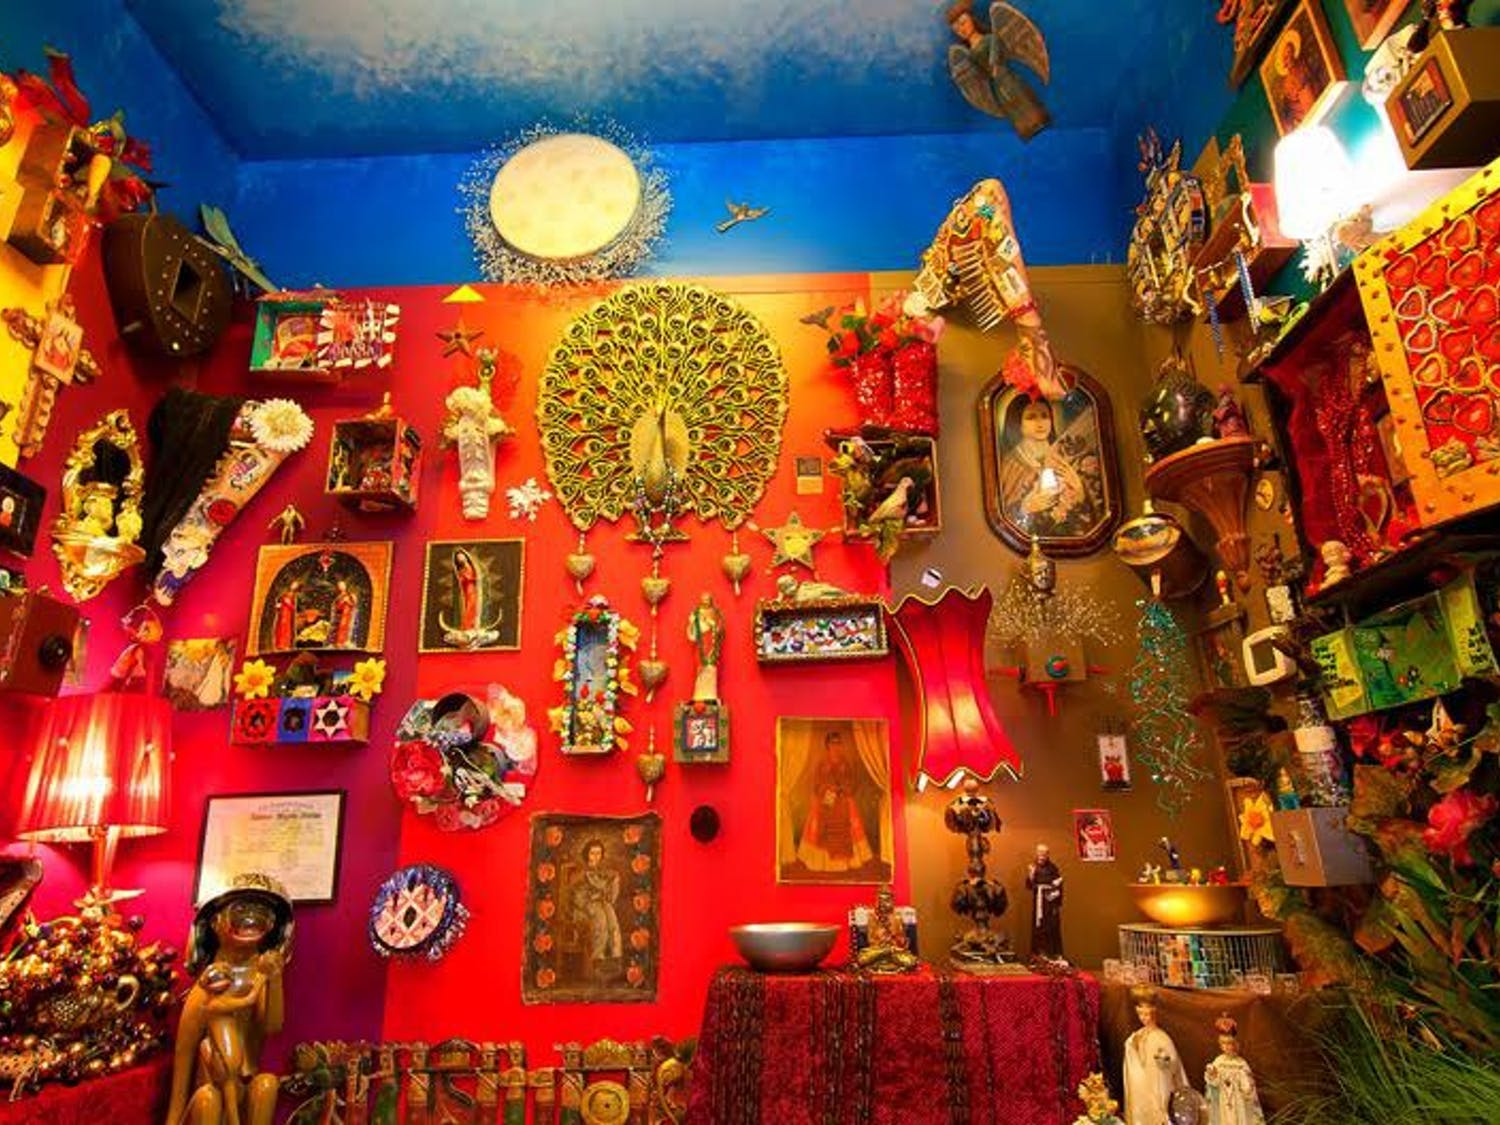 Objects hang on the walls of The Shrine Room at Cameron's in Carrboro. Photos courtesy of Bridget Pemberton-Smith.